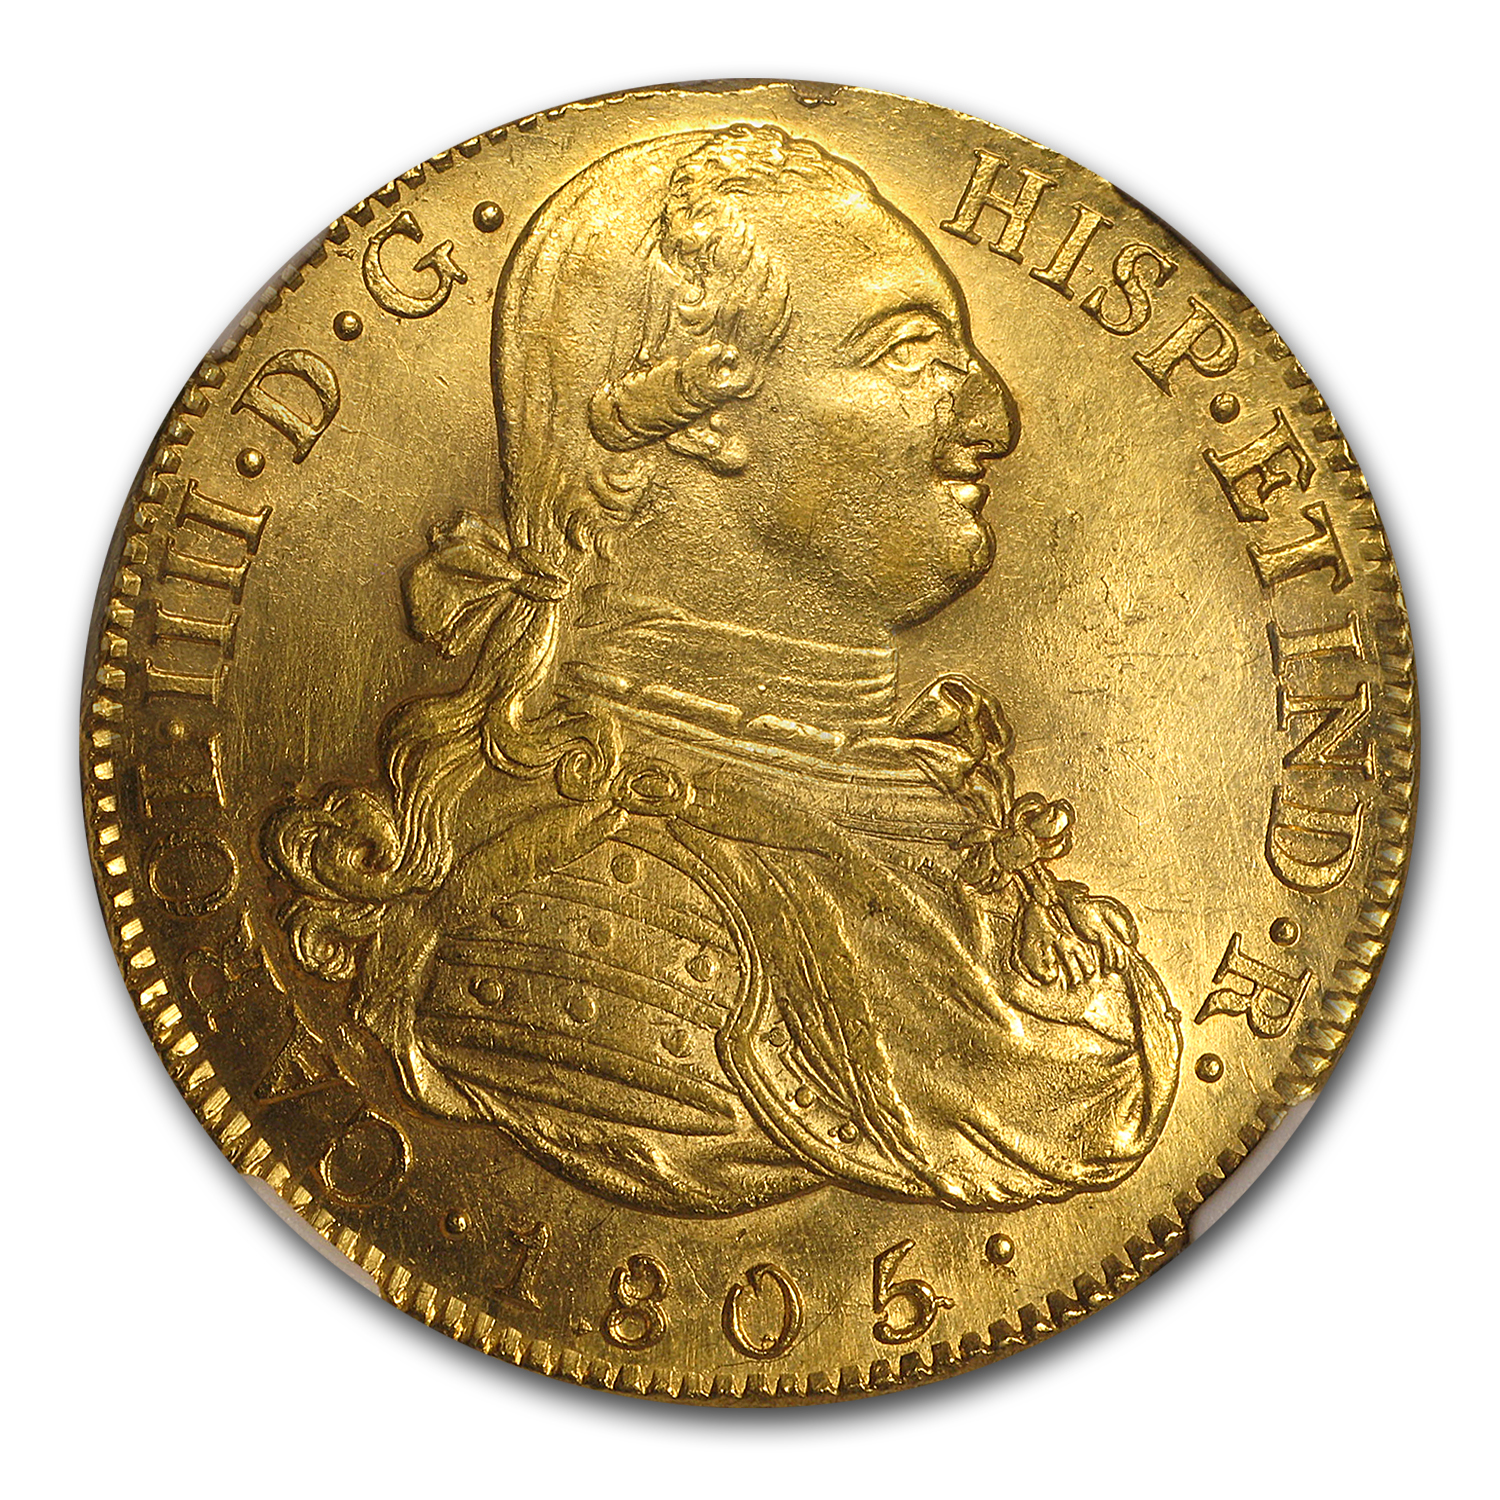 1805 P-JT Colombia Gold 8 Escudos Charles IV MS-61 NGC